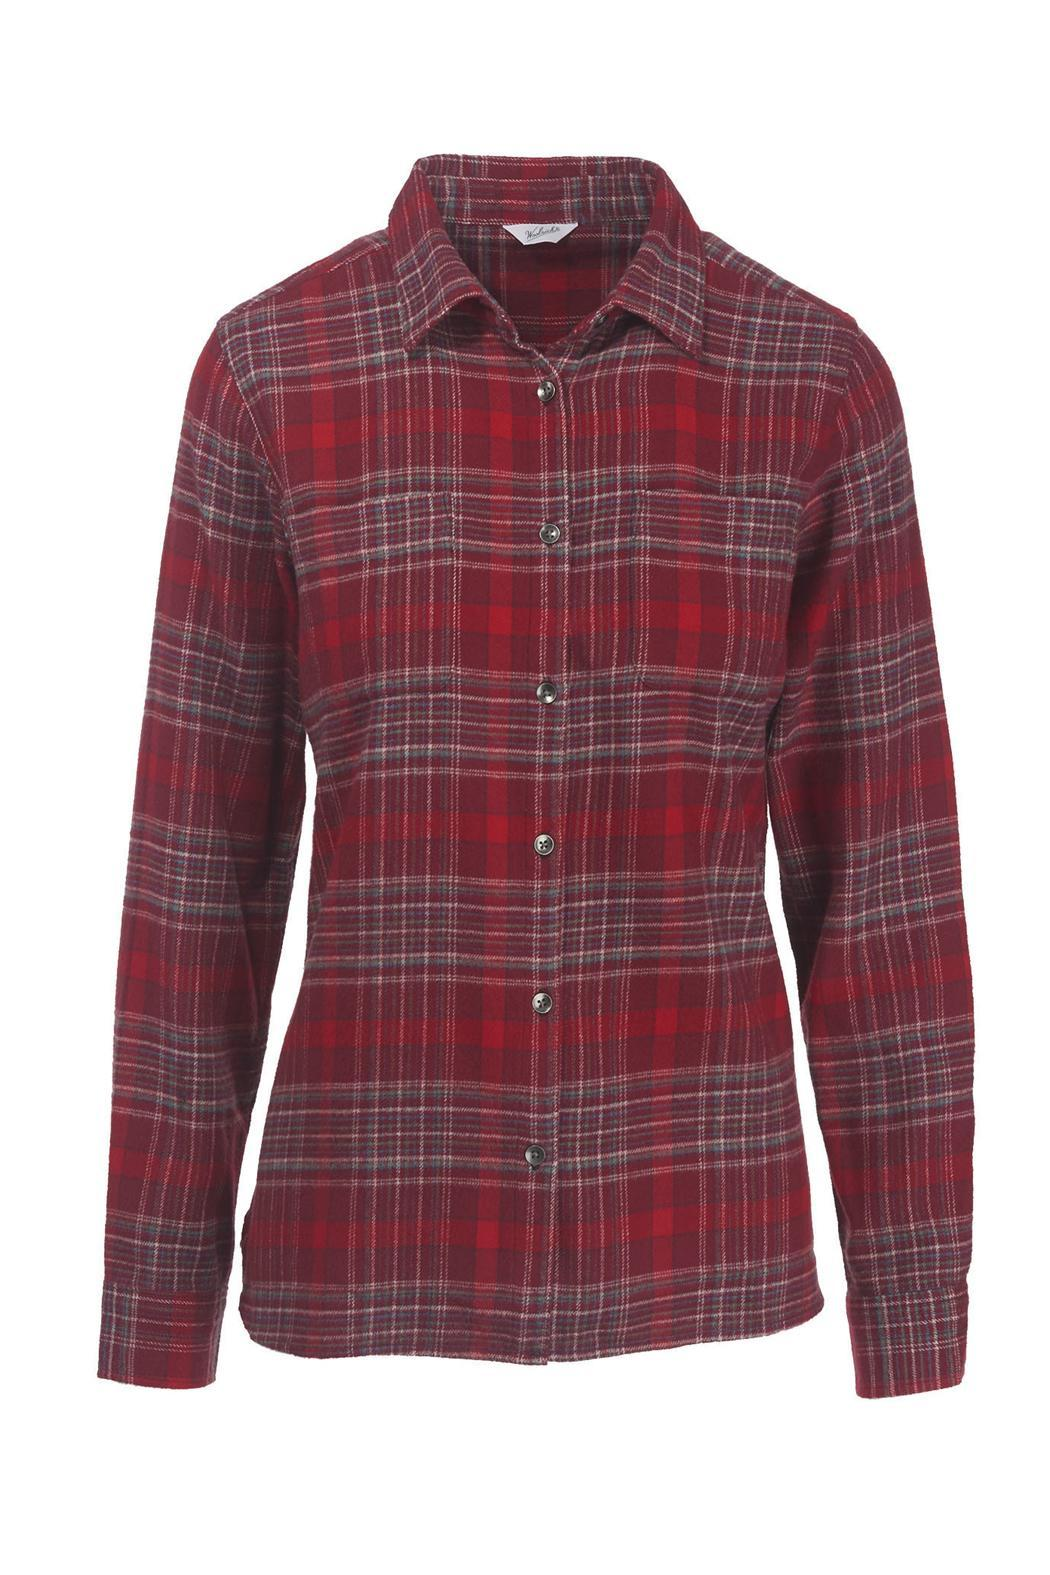 Woolrich Pemberton Flannel Shirt - Front Full Image